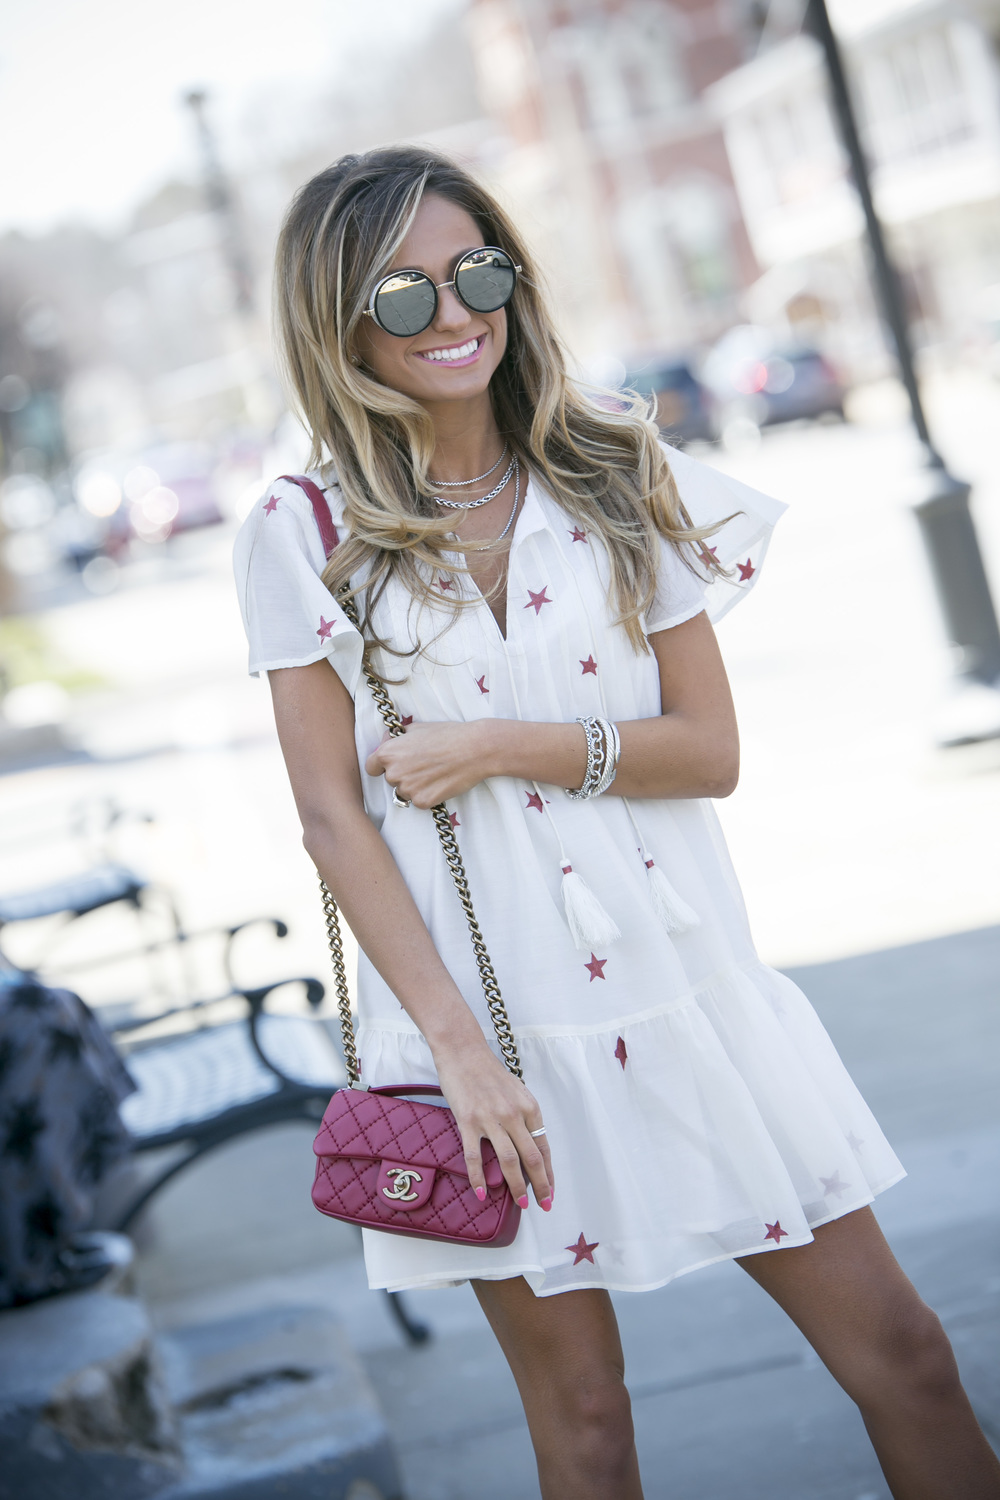 streetstyle blogger Lauren Recchia behind North of Manhattan fashion blog